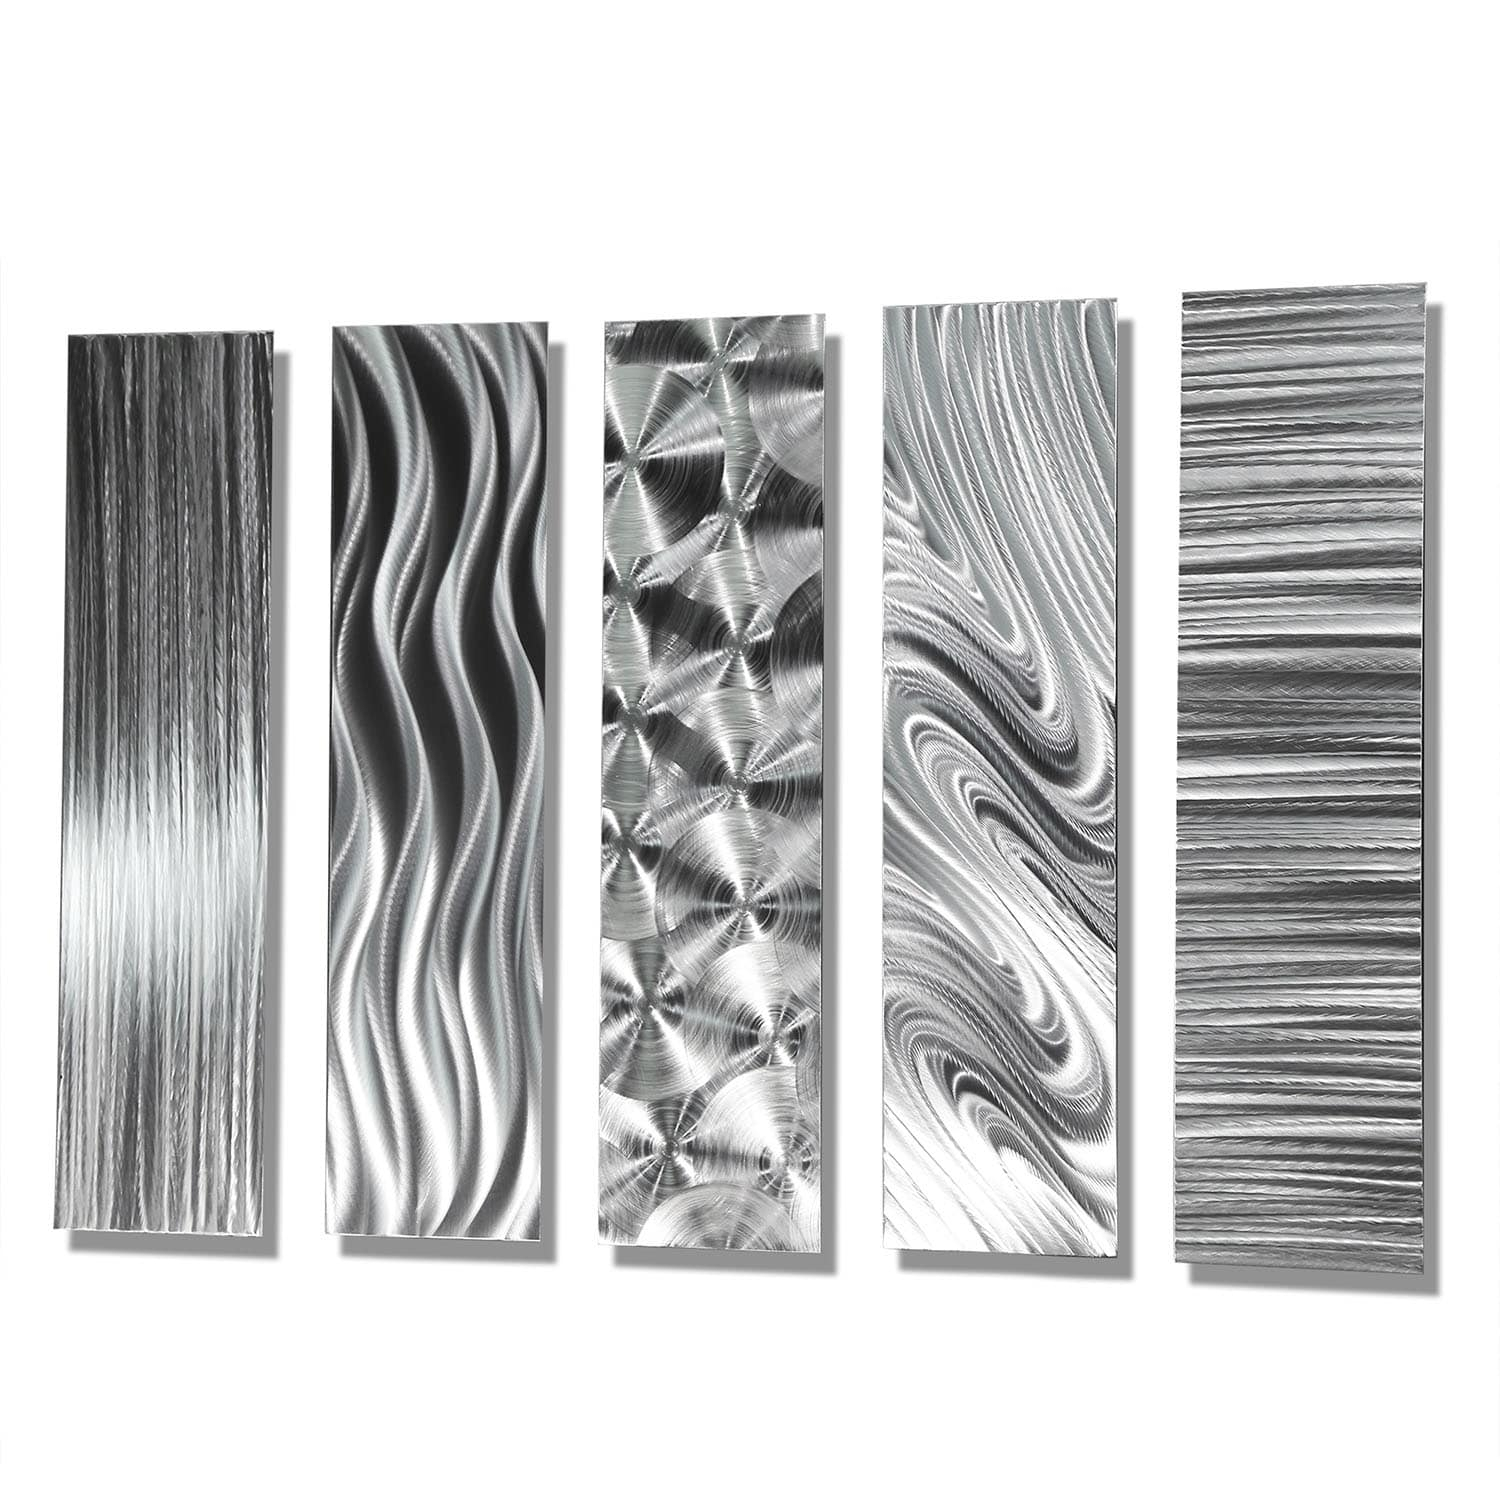 Statements2000 Set Of 5 Silver Metal Wall Art Accentsjon Allen For Newest Wall Art Accents (View 14 of 15)